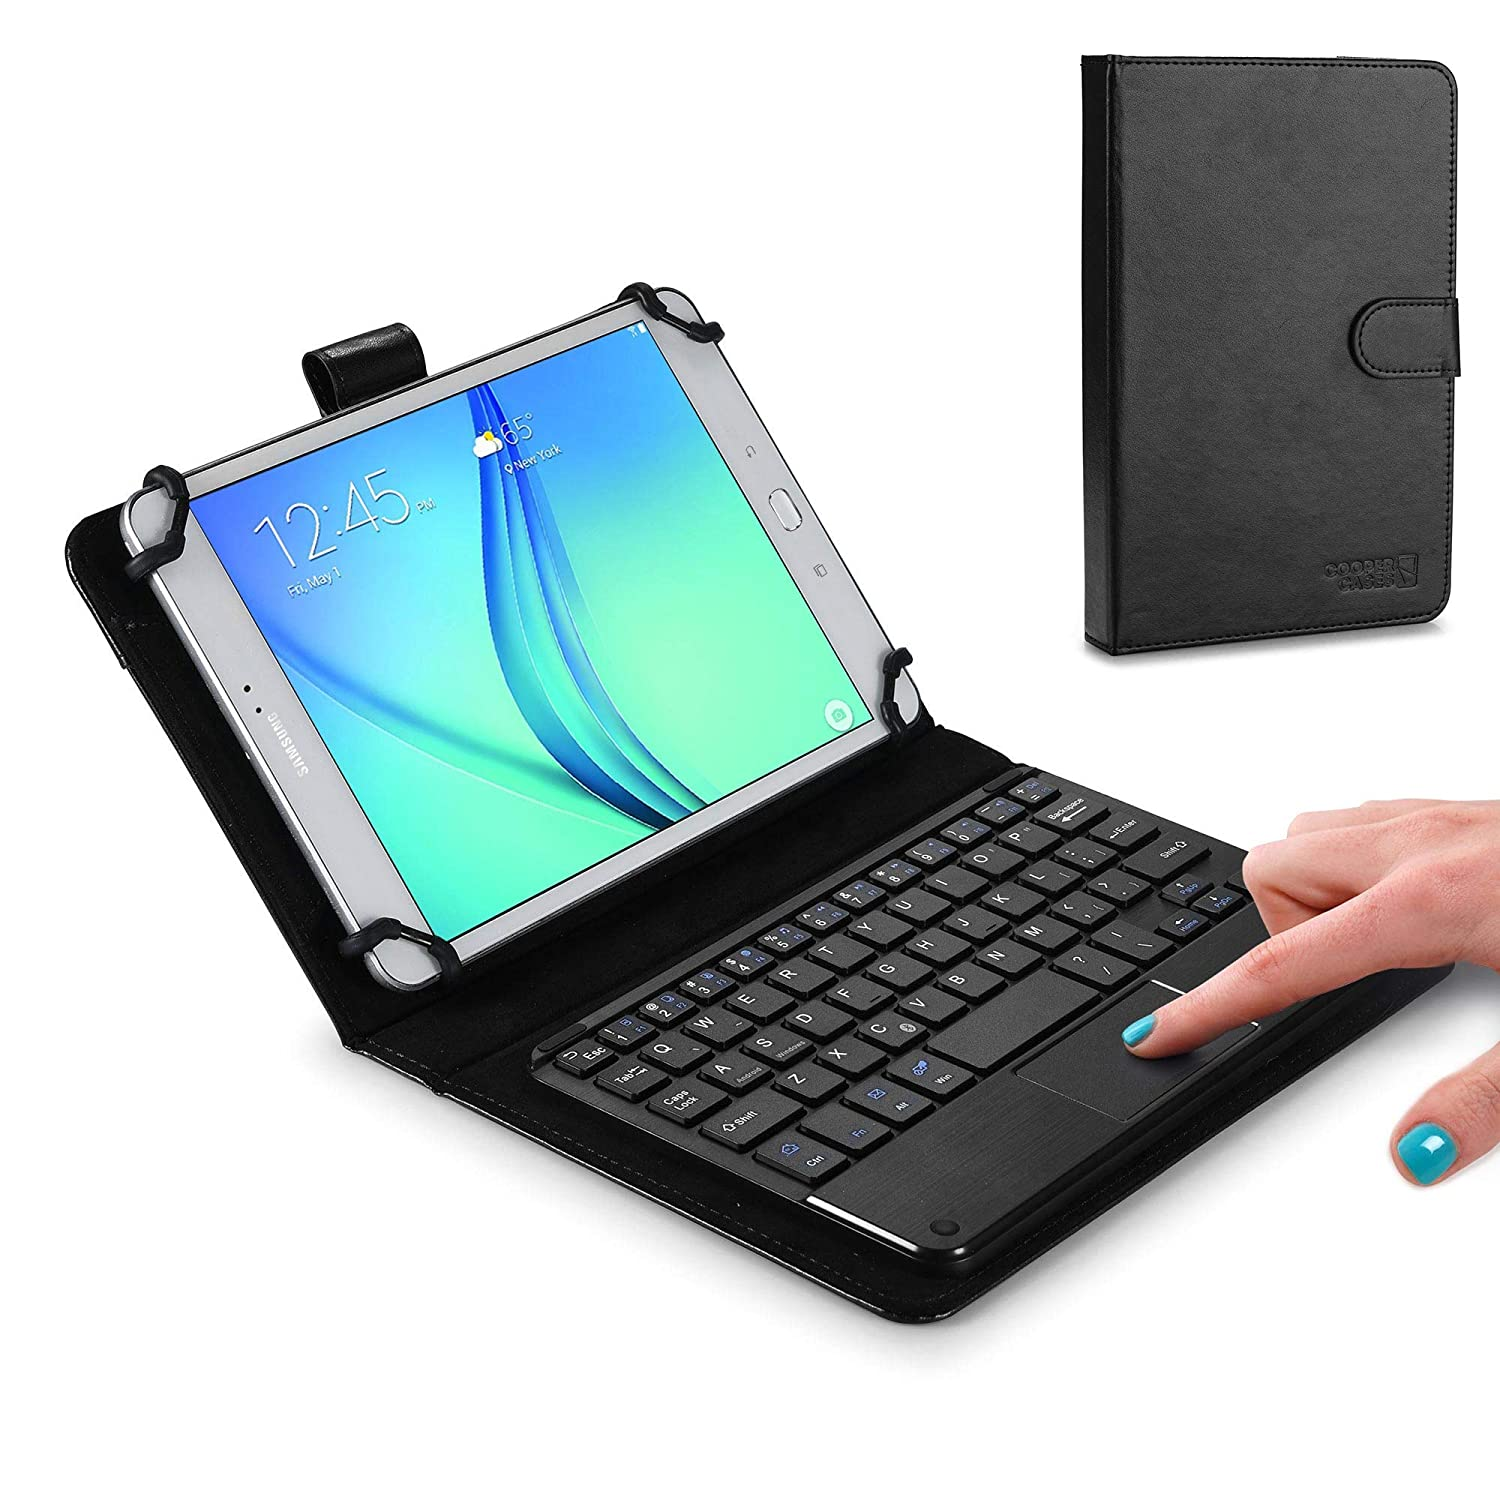 Cooper Touchpad Executive Keyboard Case for 7-8 Inch Tablets | 2-in-1 Bluetooth Wireless Keyboard with Touchpad and Leather Folio Cover (Black)